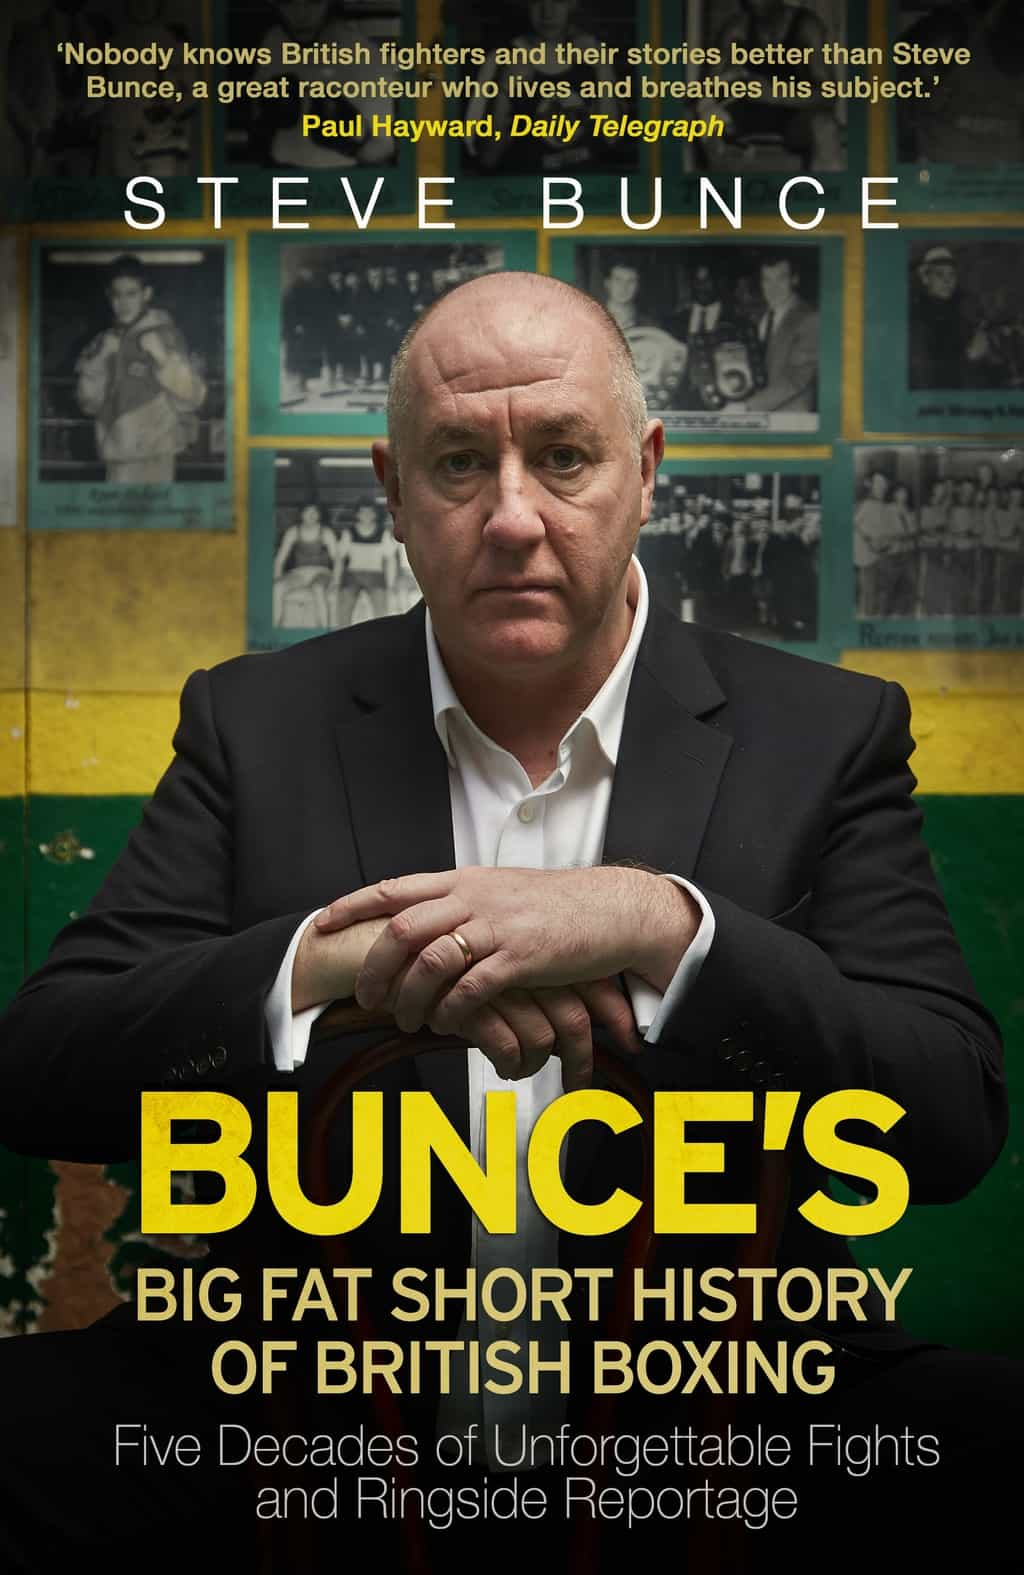 The cover of the book Bunce's Big Fat Short History of British Boxing. Boxing pundit Steve Bunce is pictured on the front looking off camera